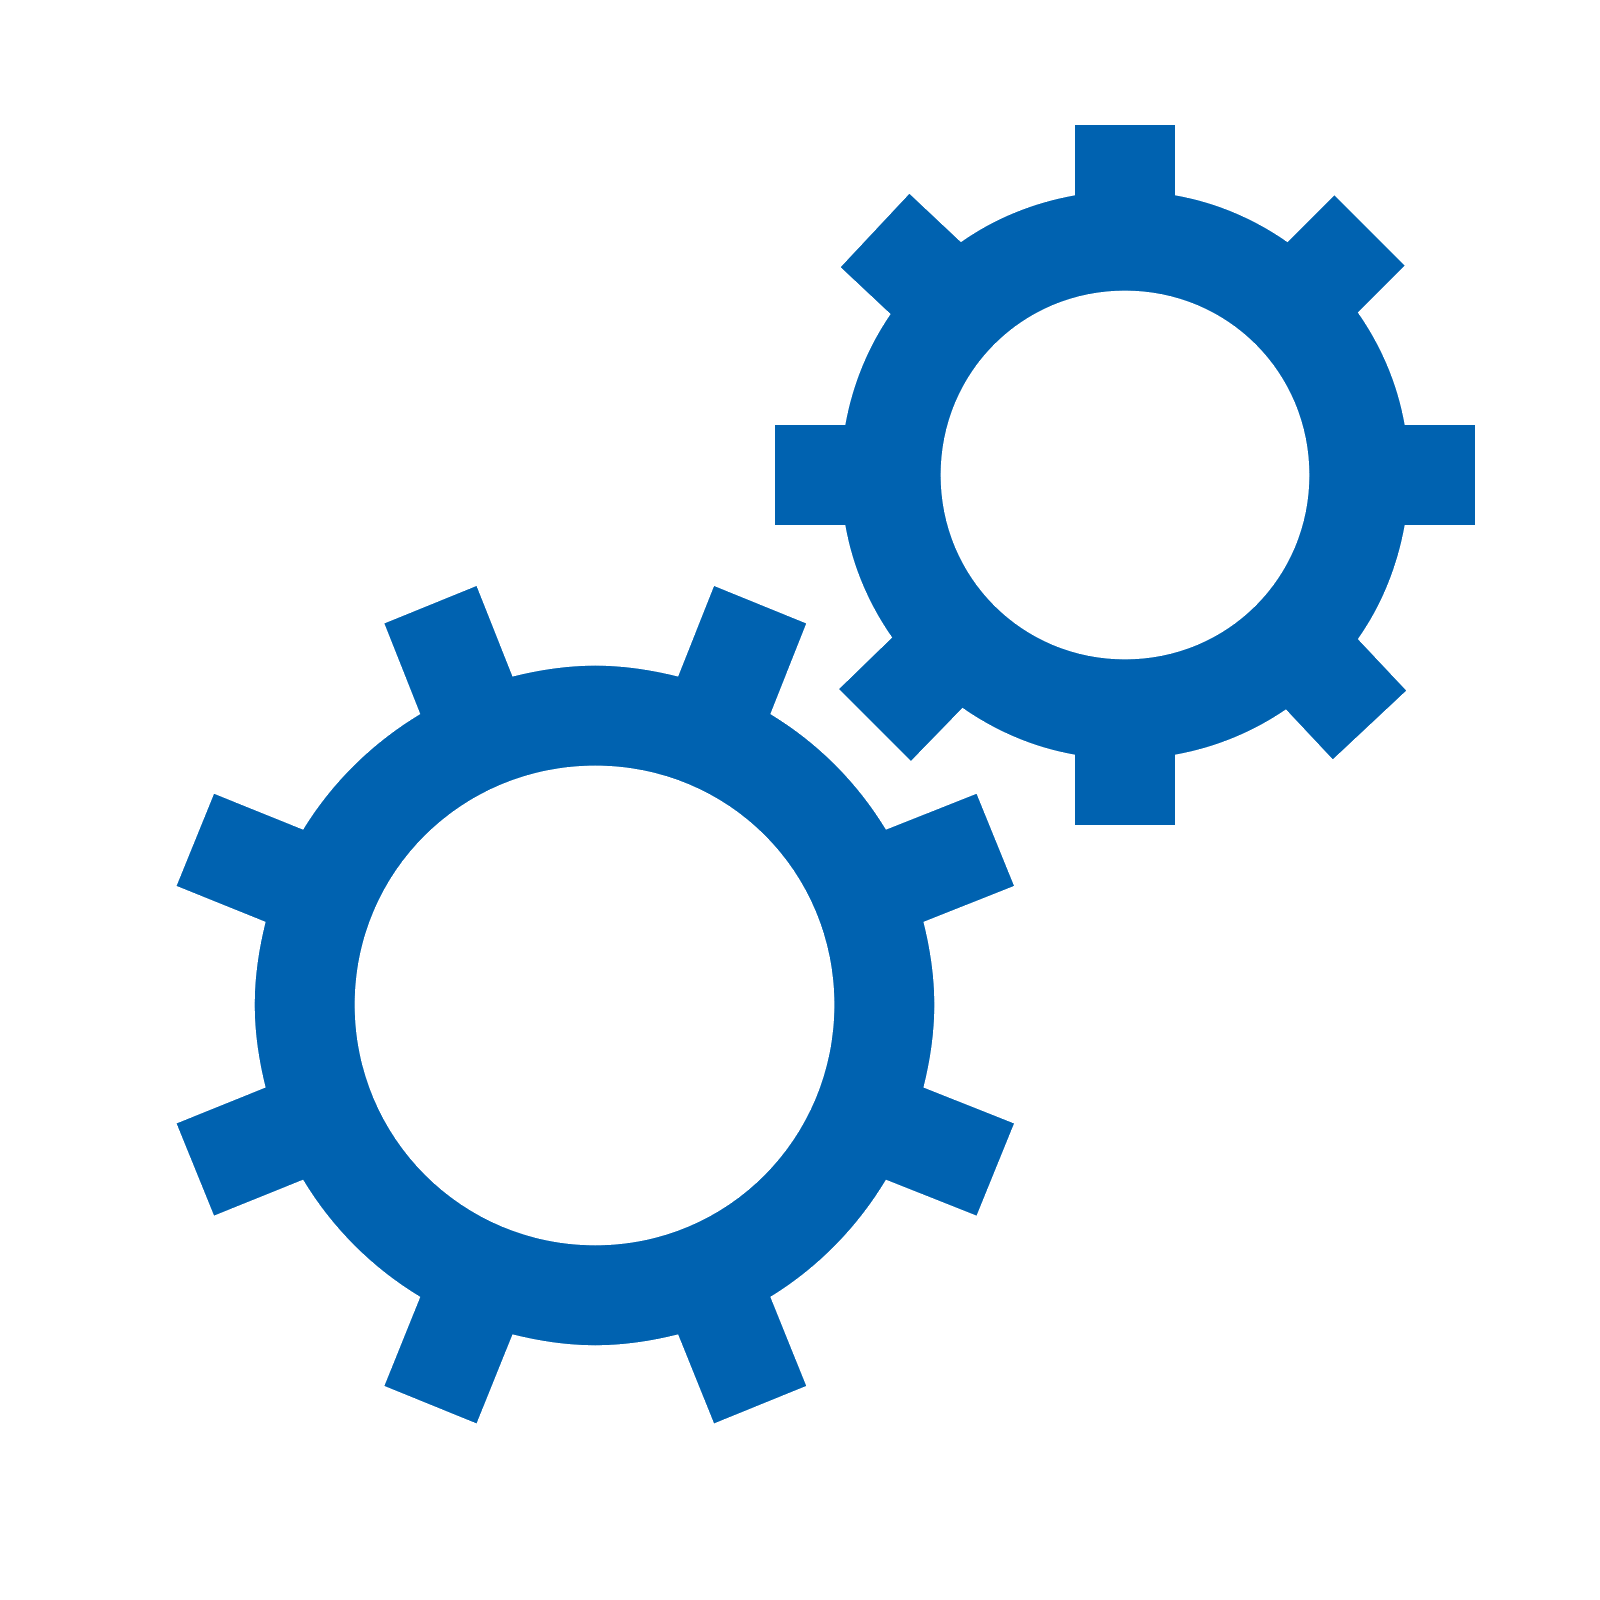 Computer icons royalty free. Gears clipart engineering symbol